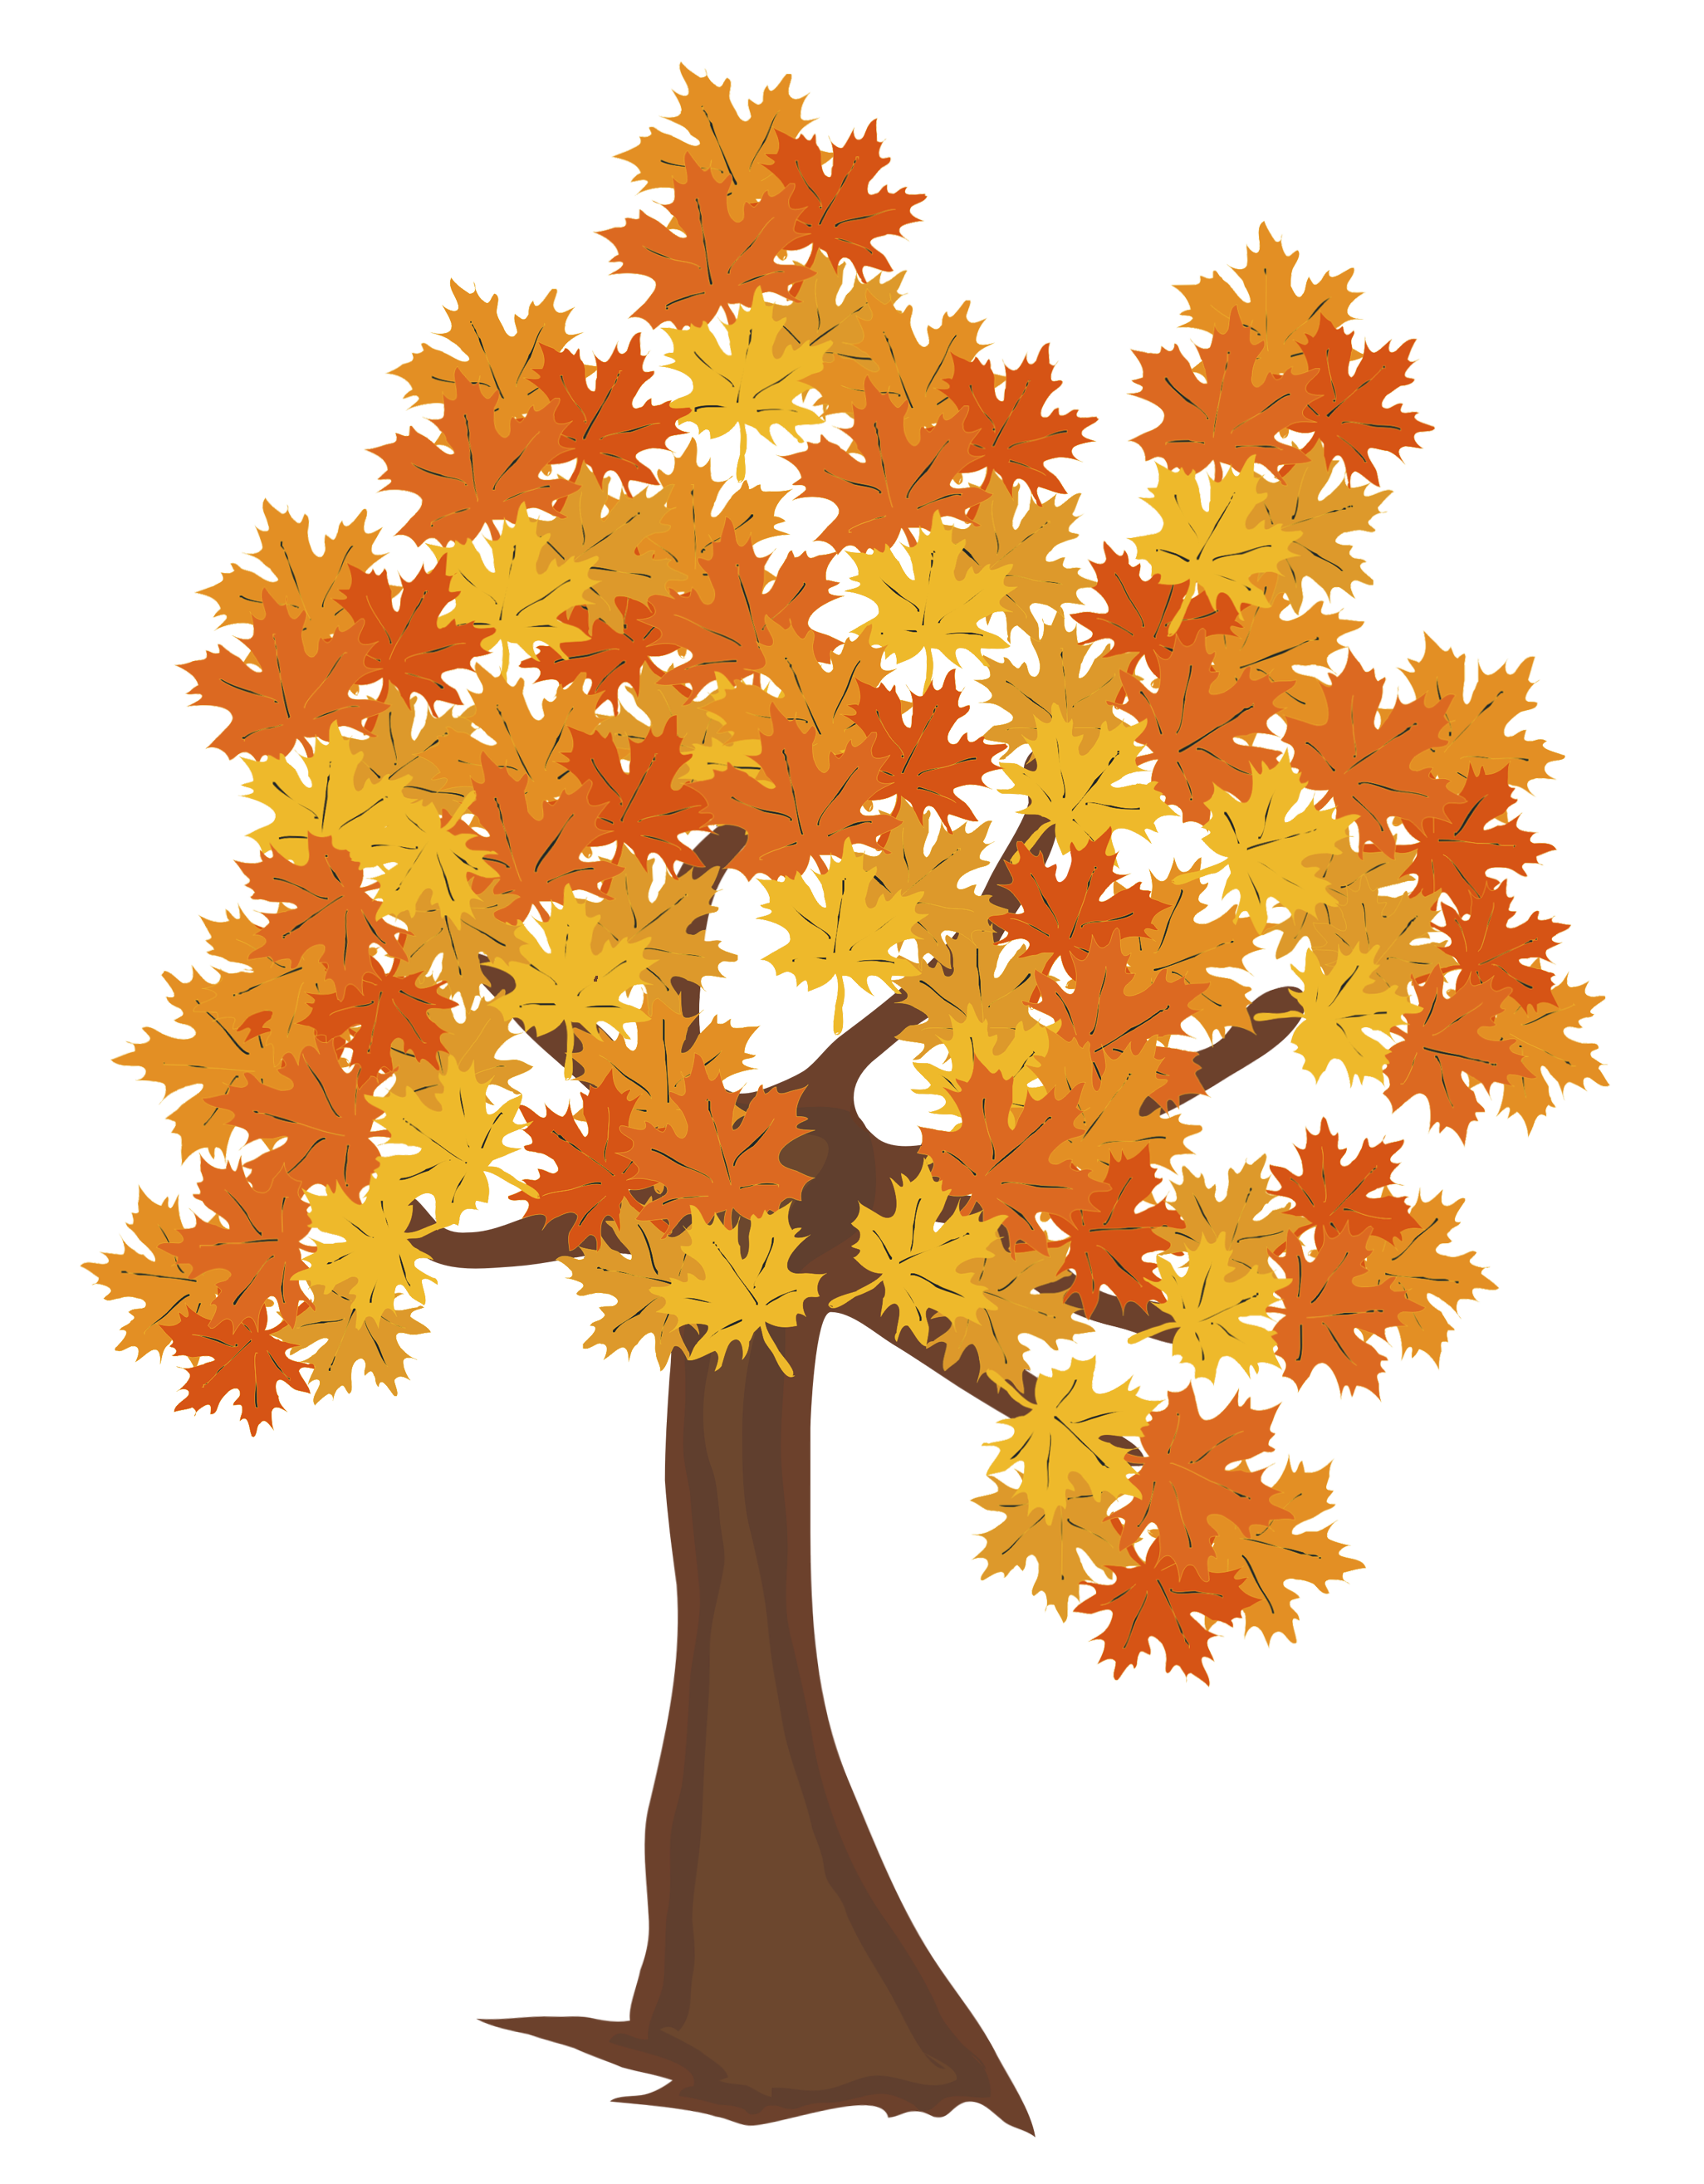 Fall trees clipart free png royalty free Png Fall Tree & Free Fall Tree.png Transparent Images #22533 - PNGio png royalty free